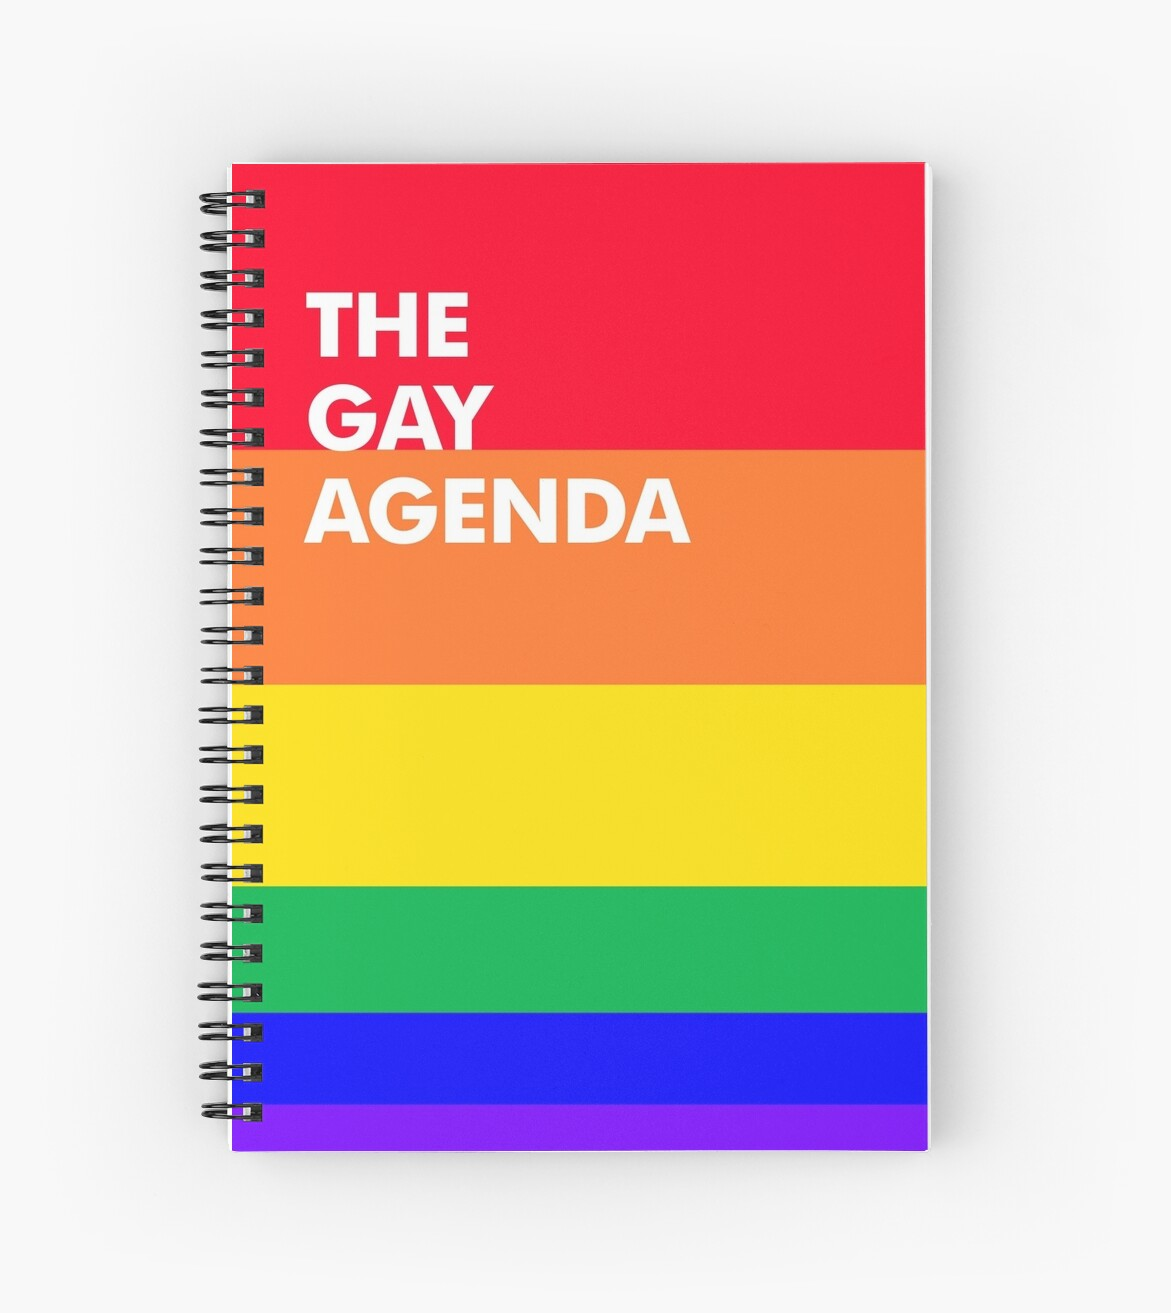 What is the gay agenda